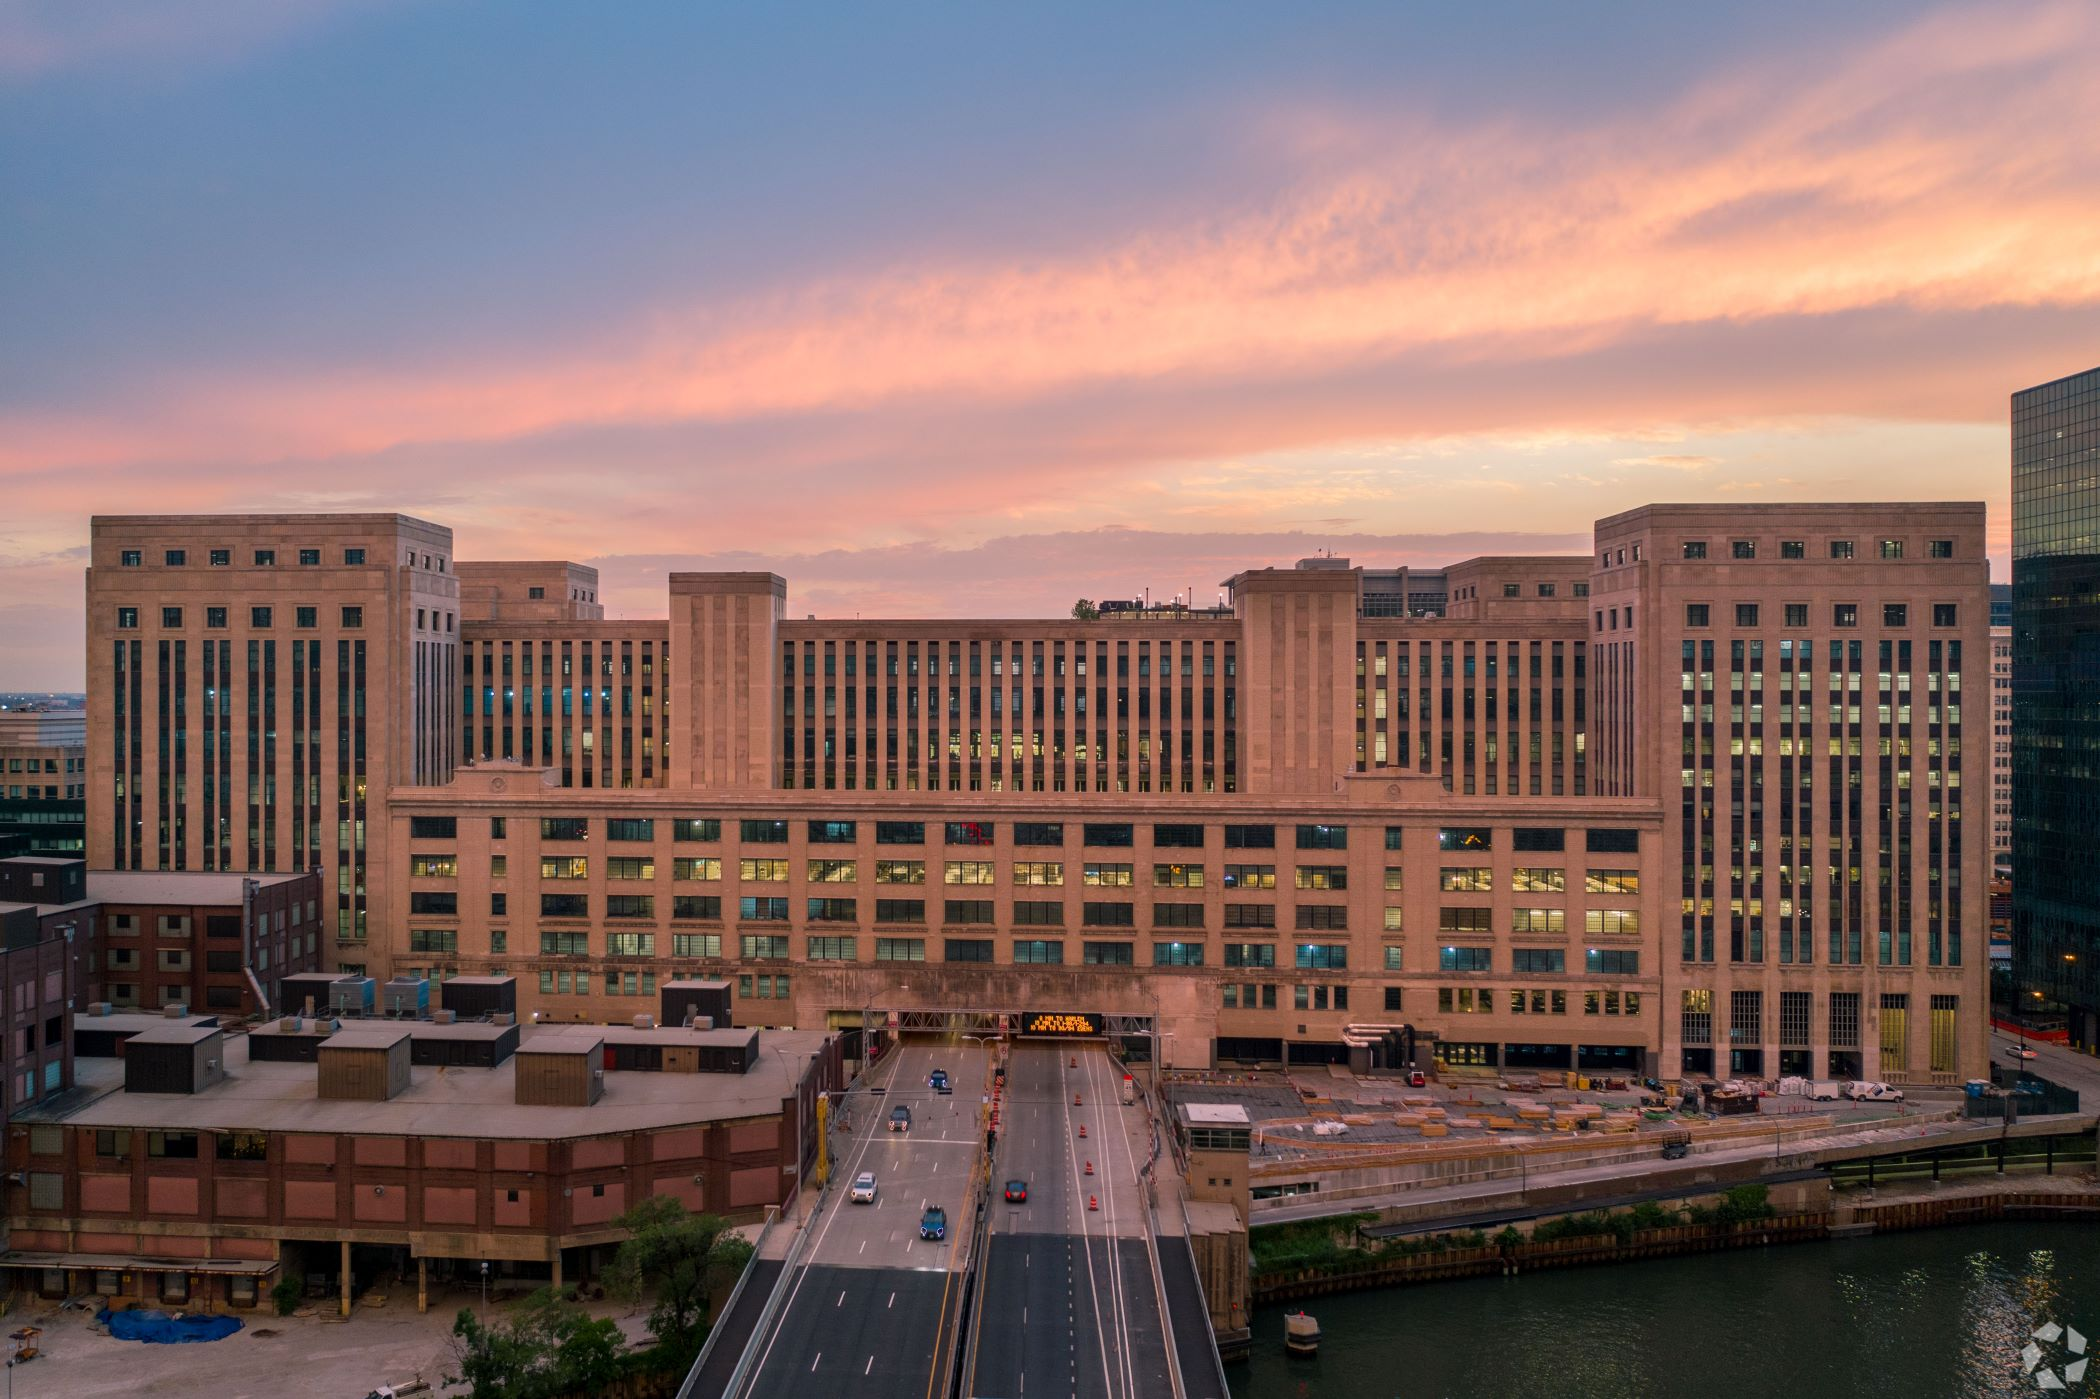 In 2019, Uber was hailed as the lead anchor to the Old Post Office in downtown Chicago. In 2021, it put 30% of the 463,000 square feet it was taking there on the sublease market. (CoStar)